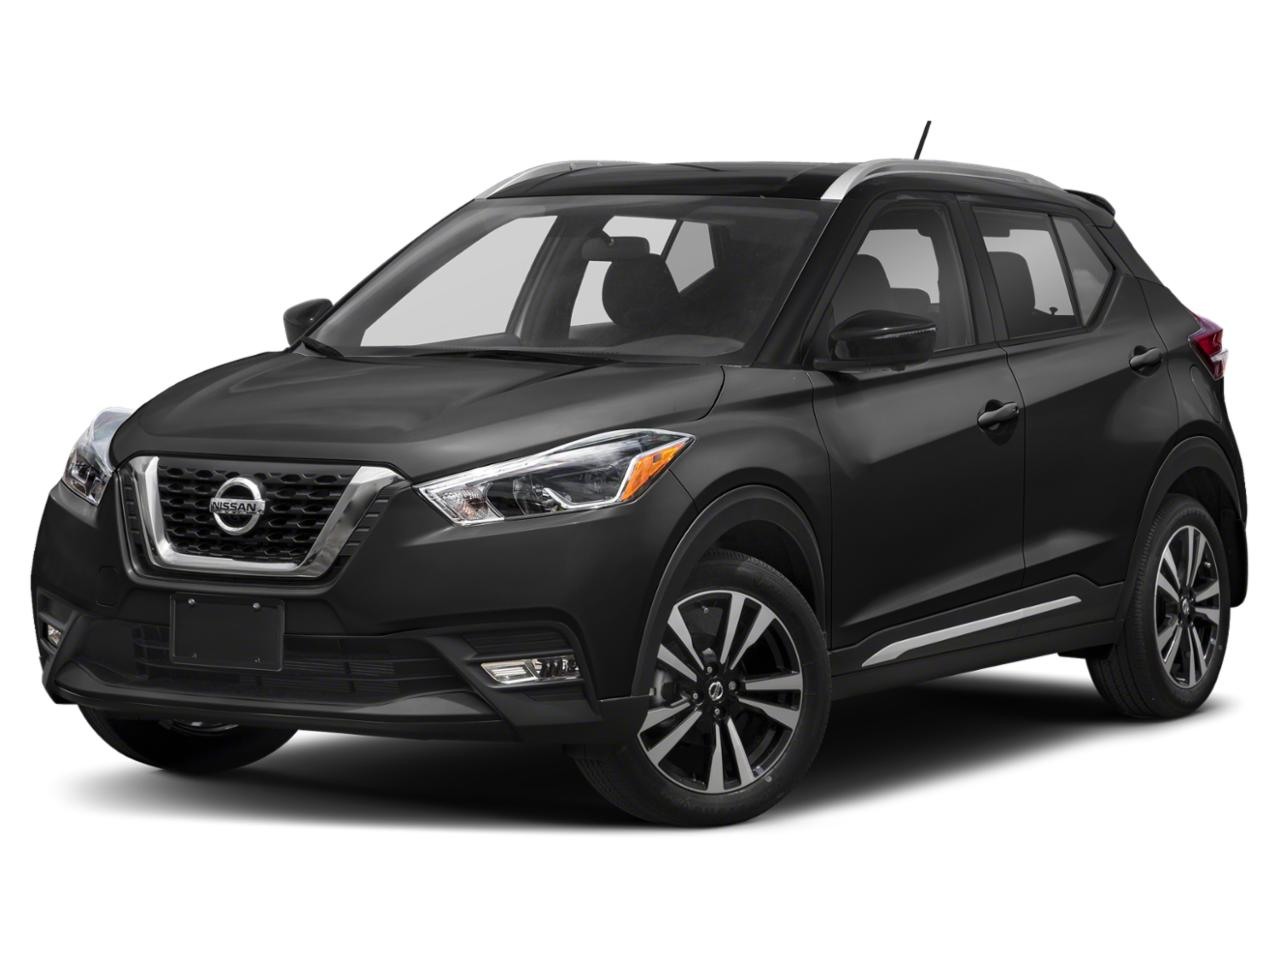 2019 Nissan Kicks Vehicle Photo in Flemington, NJ 08822